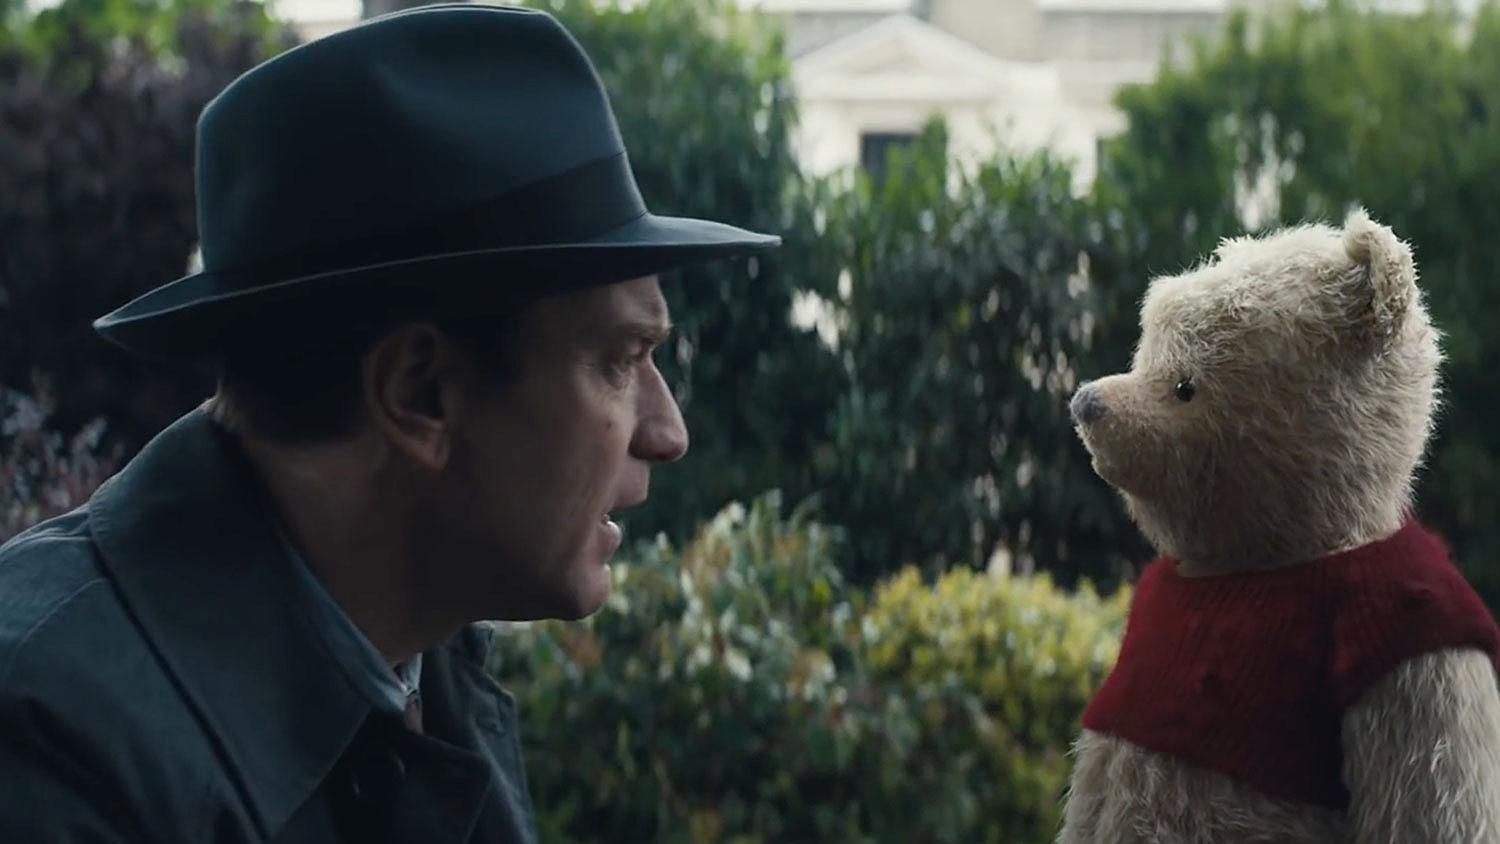 Ewan McGregor plays Christopher Robin and Tim Cummings is the voice for Winnie the Pooh in the family-friendly film released Aug. 3. (Photo via TNS/Disney)